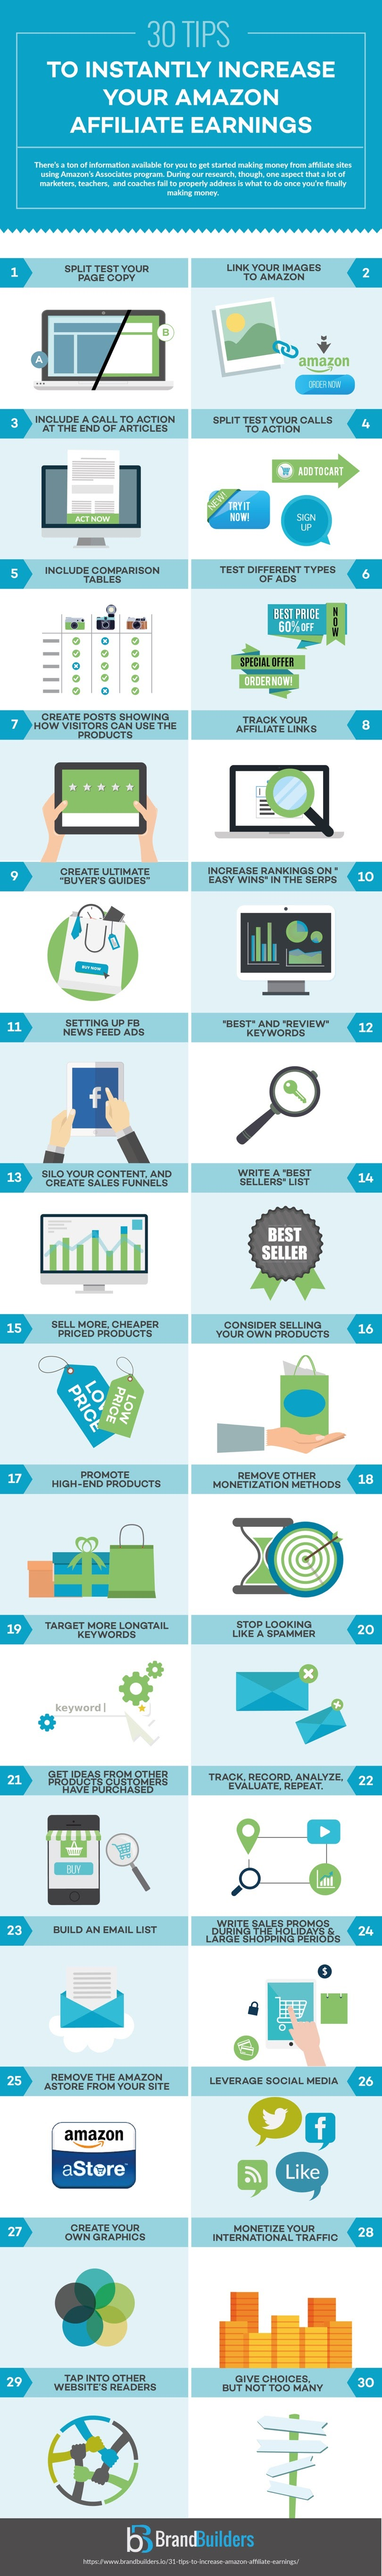 30 Easy Ways to Increase Your Amazon Affiliate Earnings - #Infographic